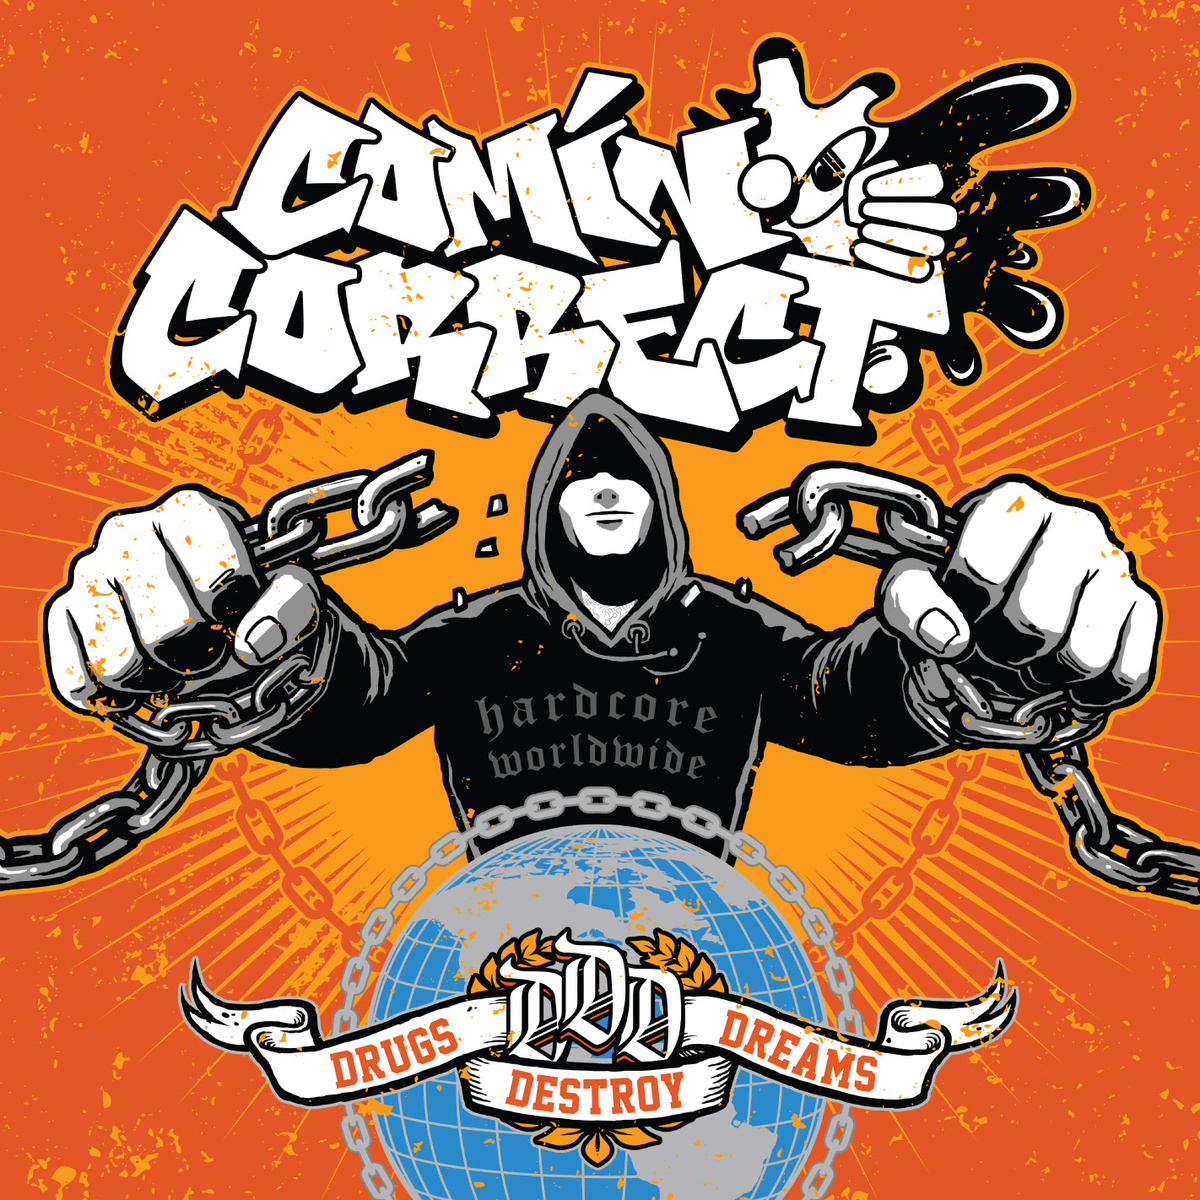 Comin' Correct is back with a new album